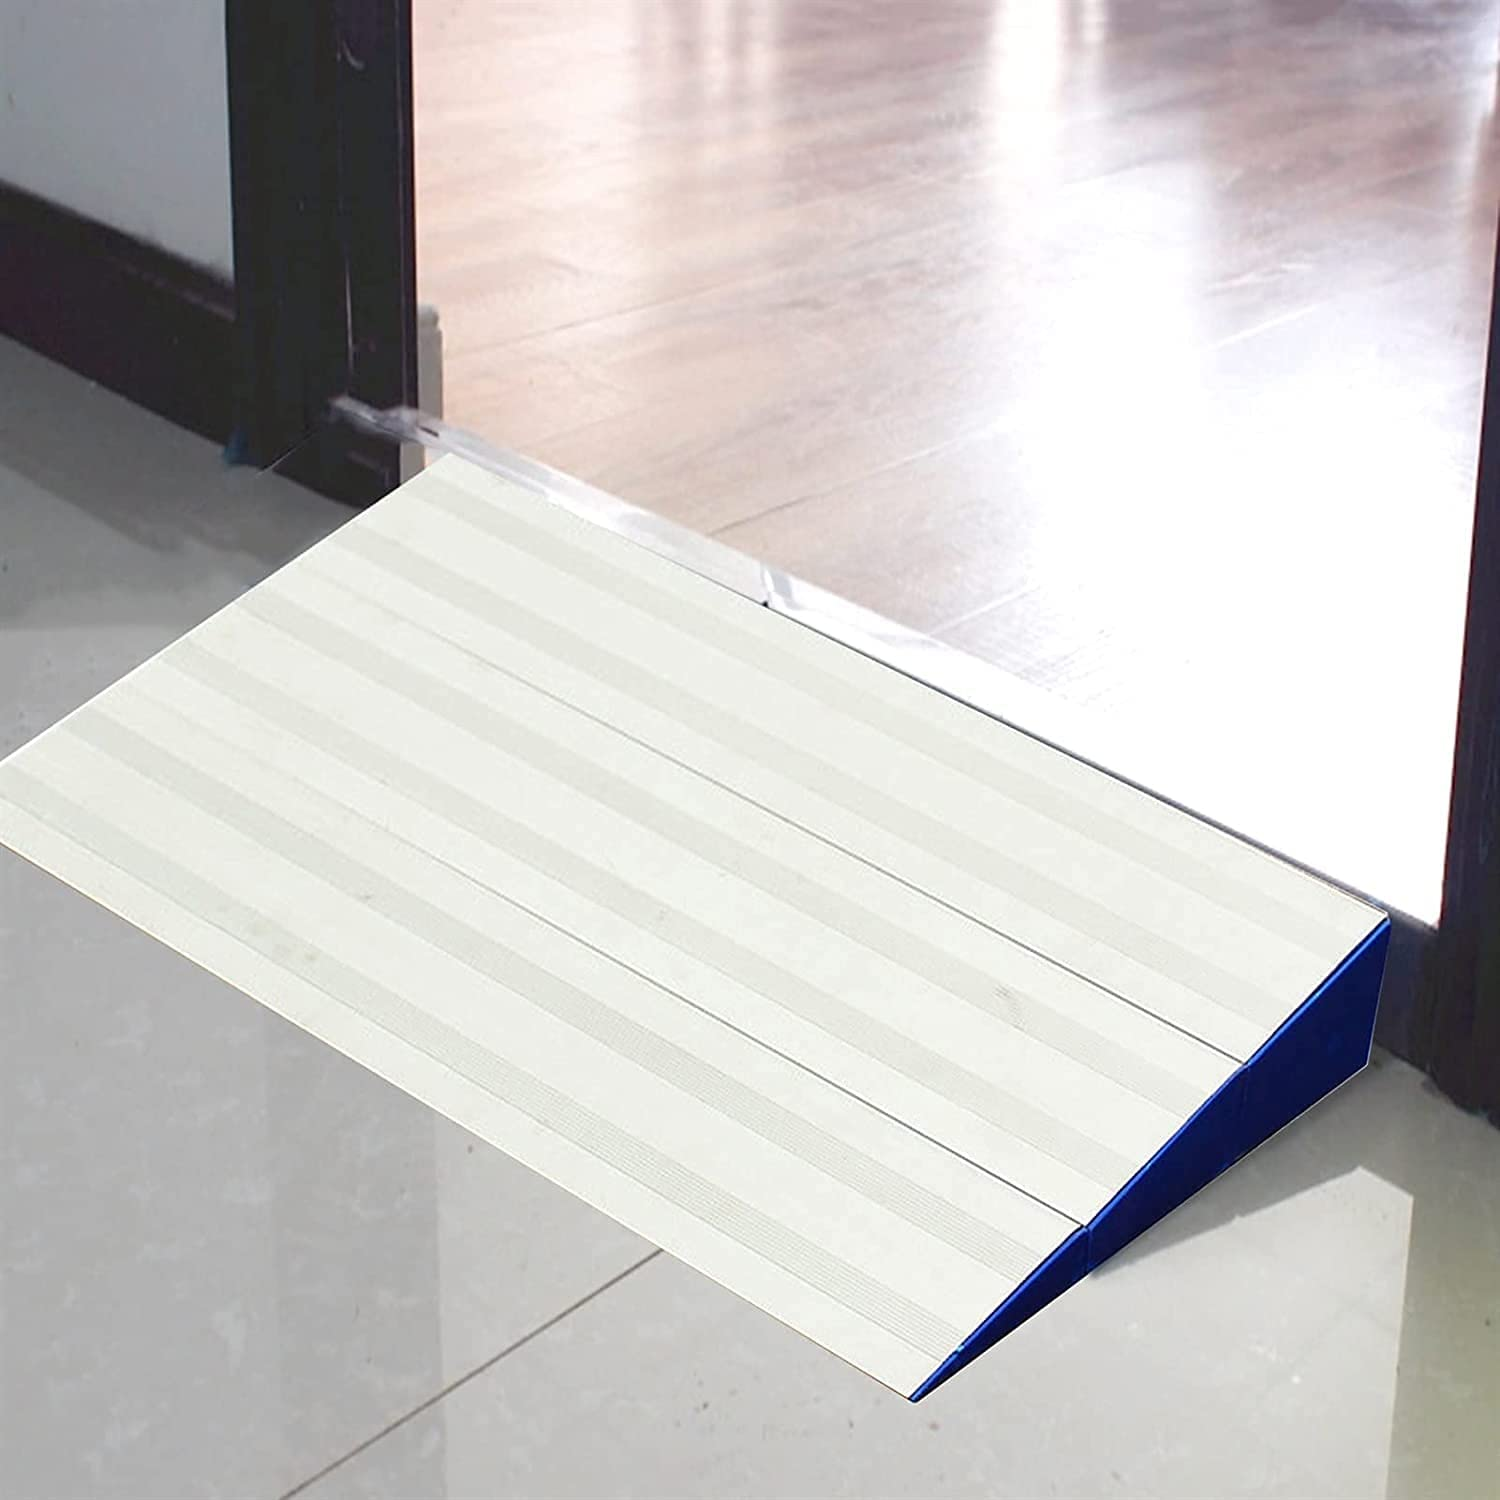 LJYT Adjustable Threshold Ramp for Low online shopping 2 Doorways famous Rise Doo Inch